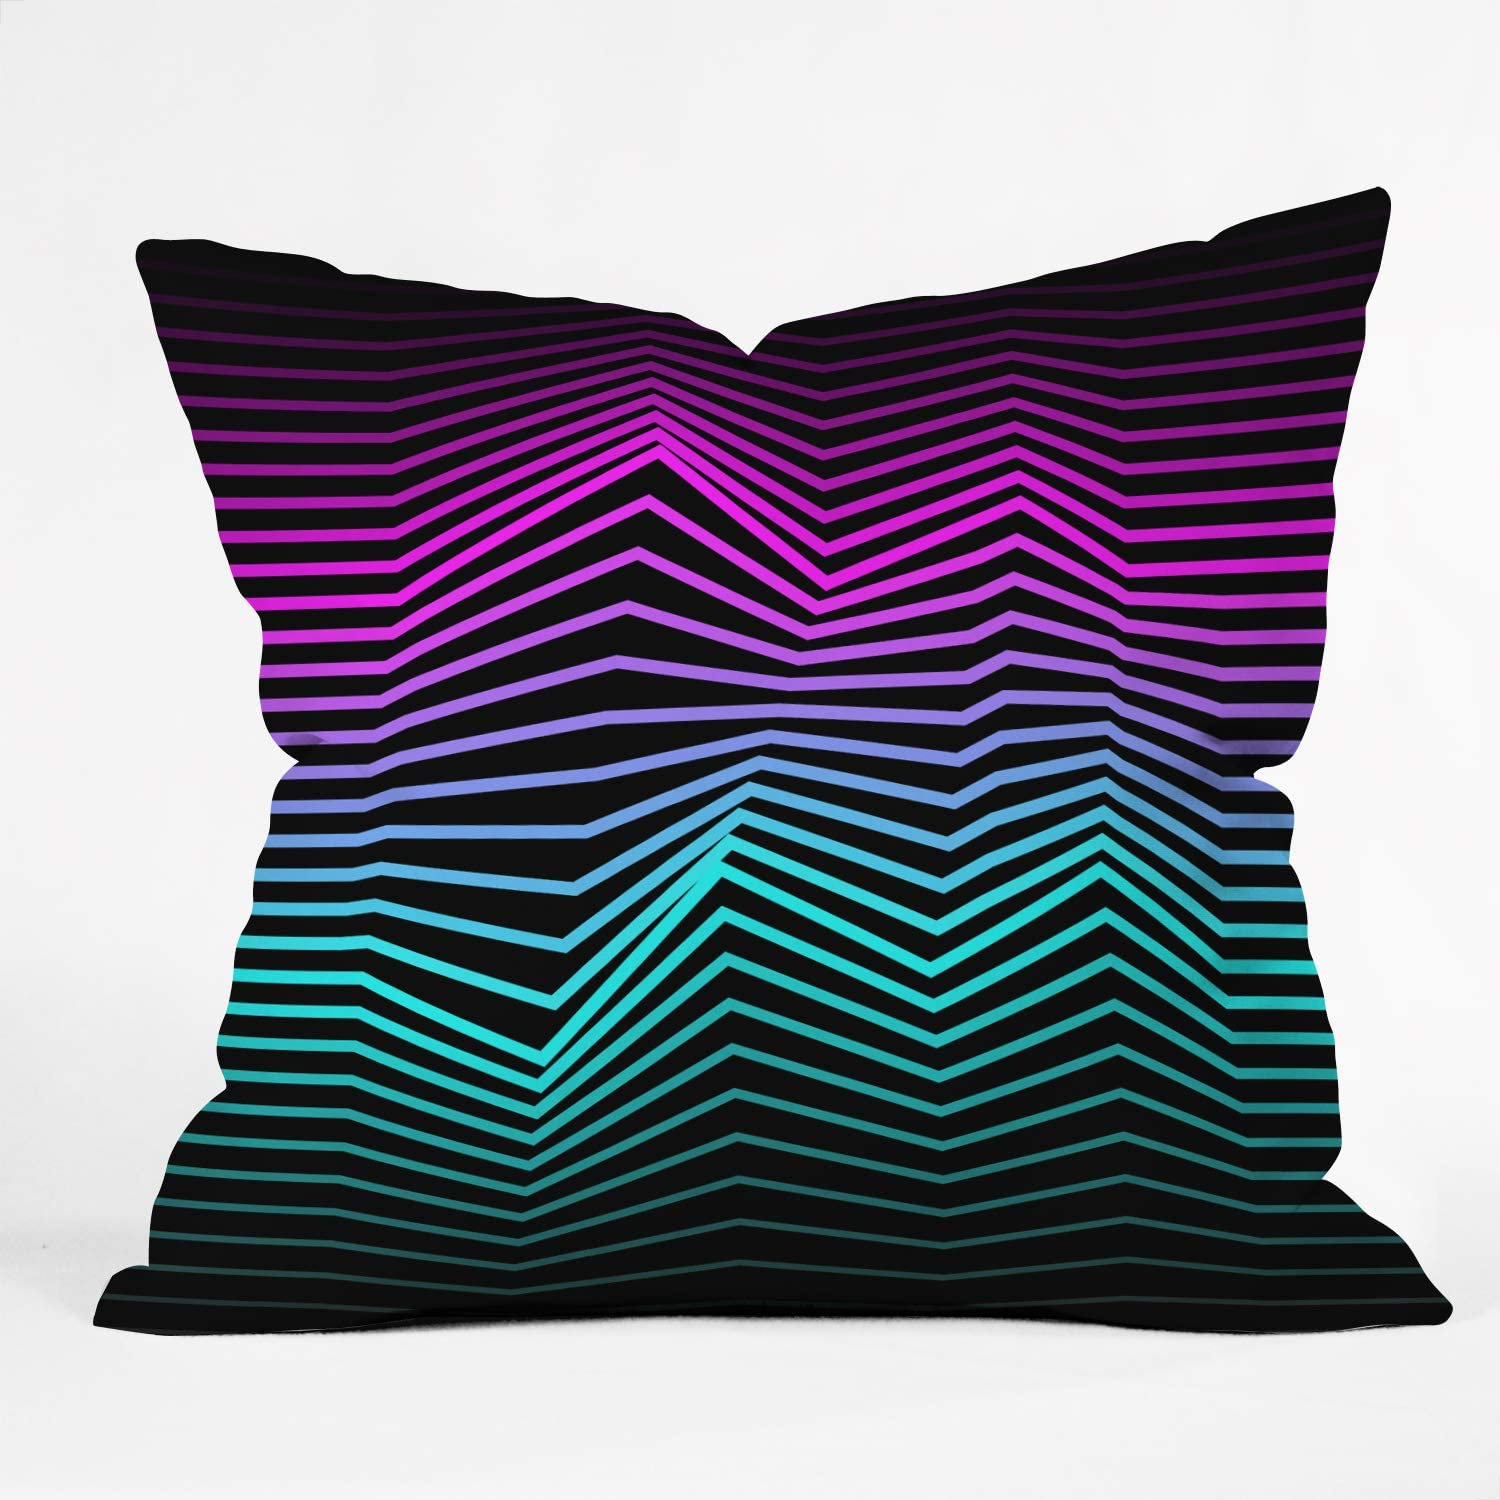 Deny Designs Three of the Possessed 大特価!! Miami Pi Nights Indoor Throw 最新号掲載アイテム